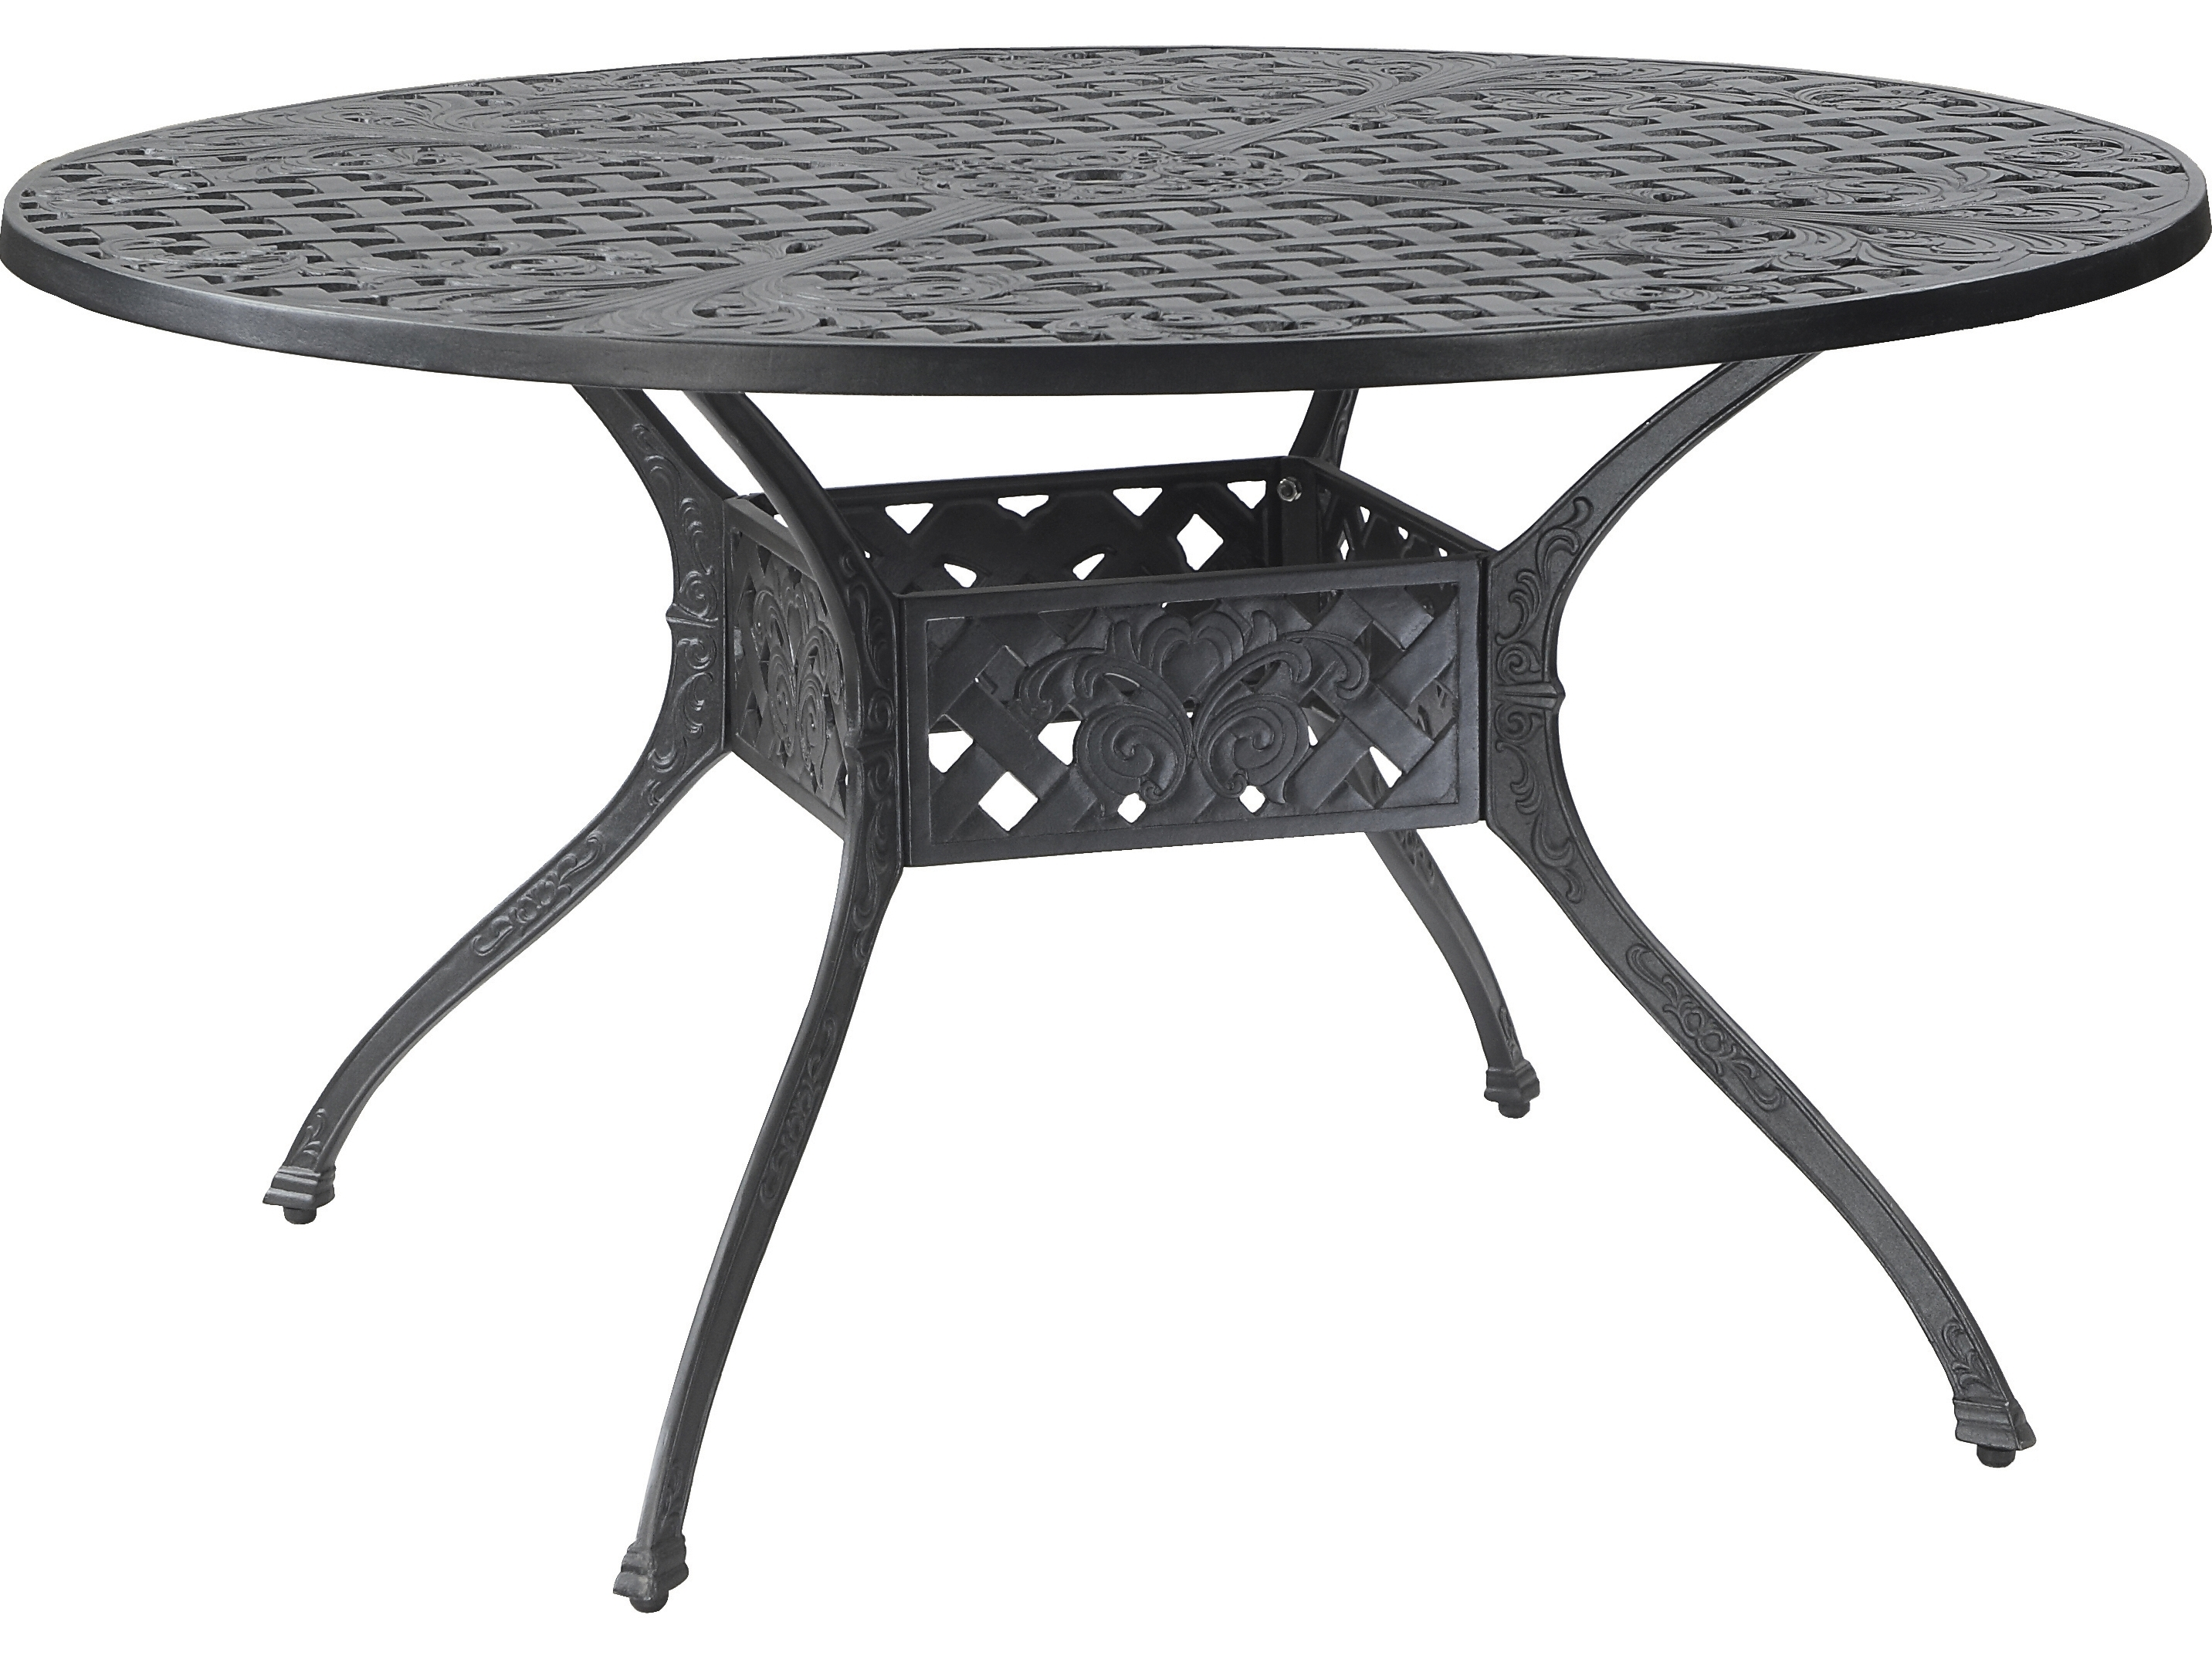 Widely Used Verona Dining Tables For Gensun Verona Cast Aluminum 54 Round Dining Table With Umbrella Hole (View 24 of 25)